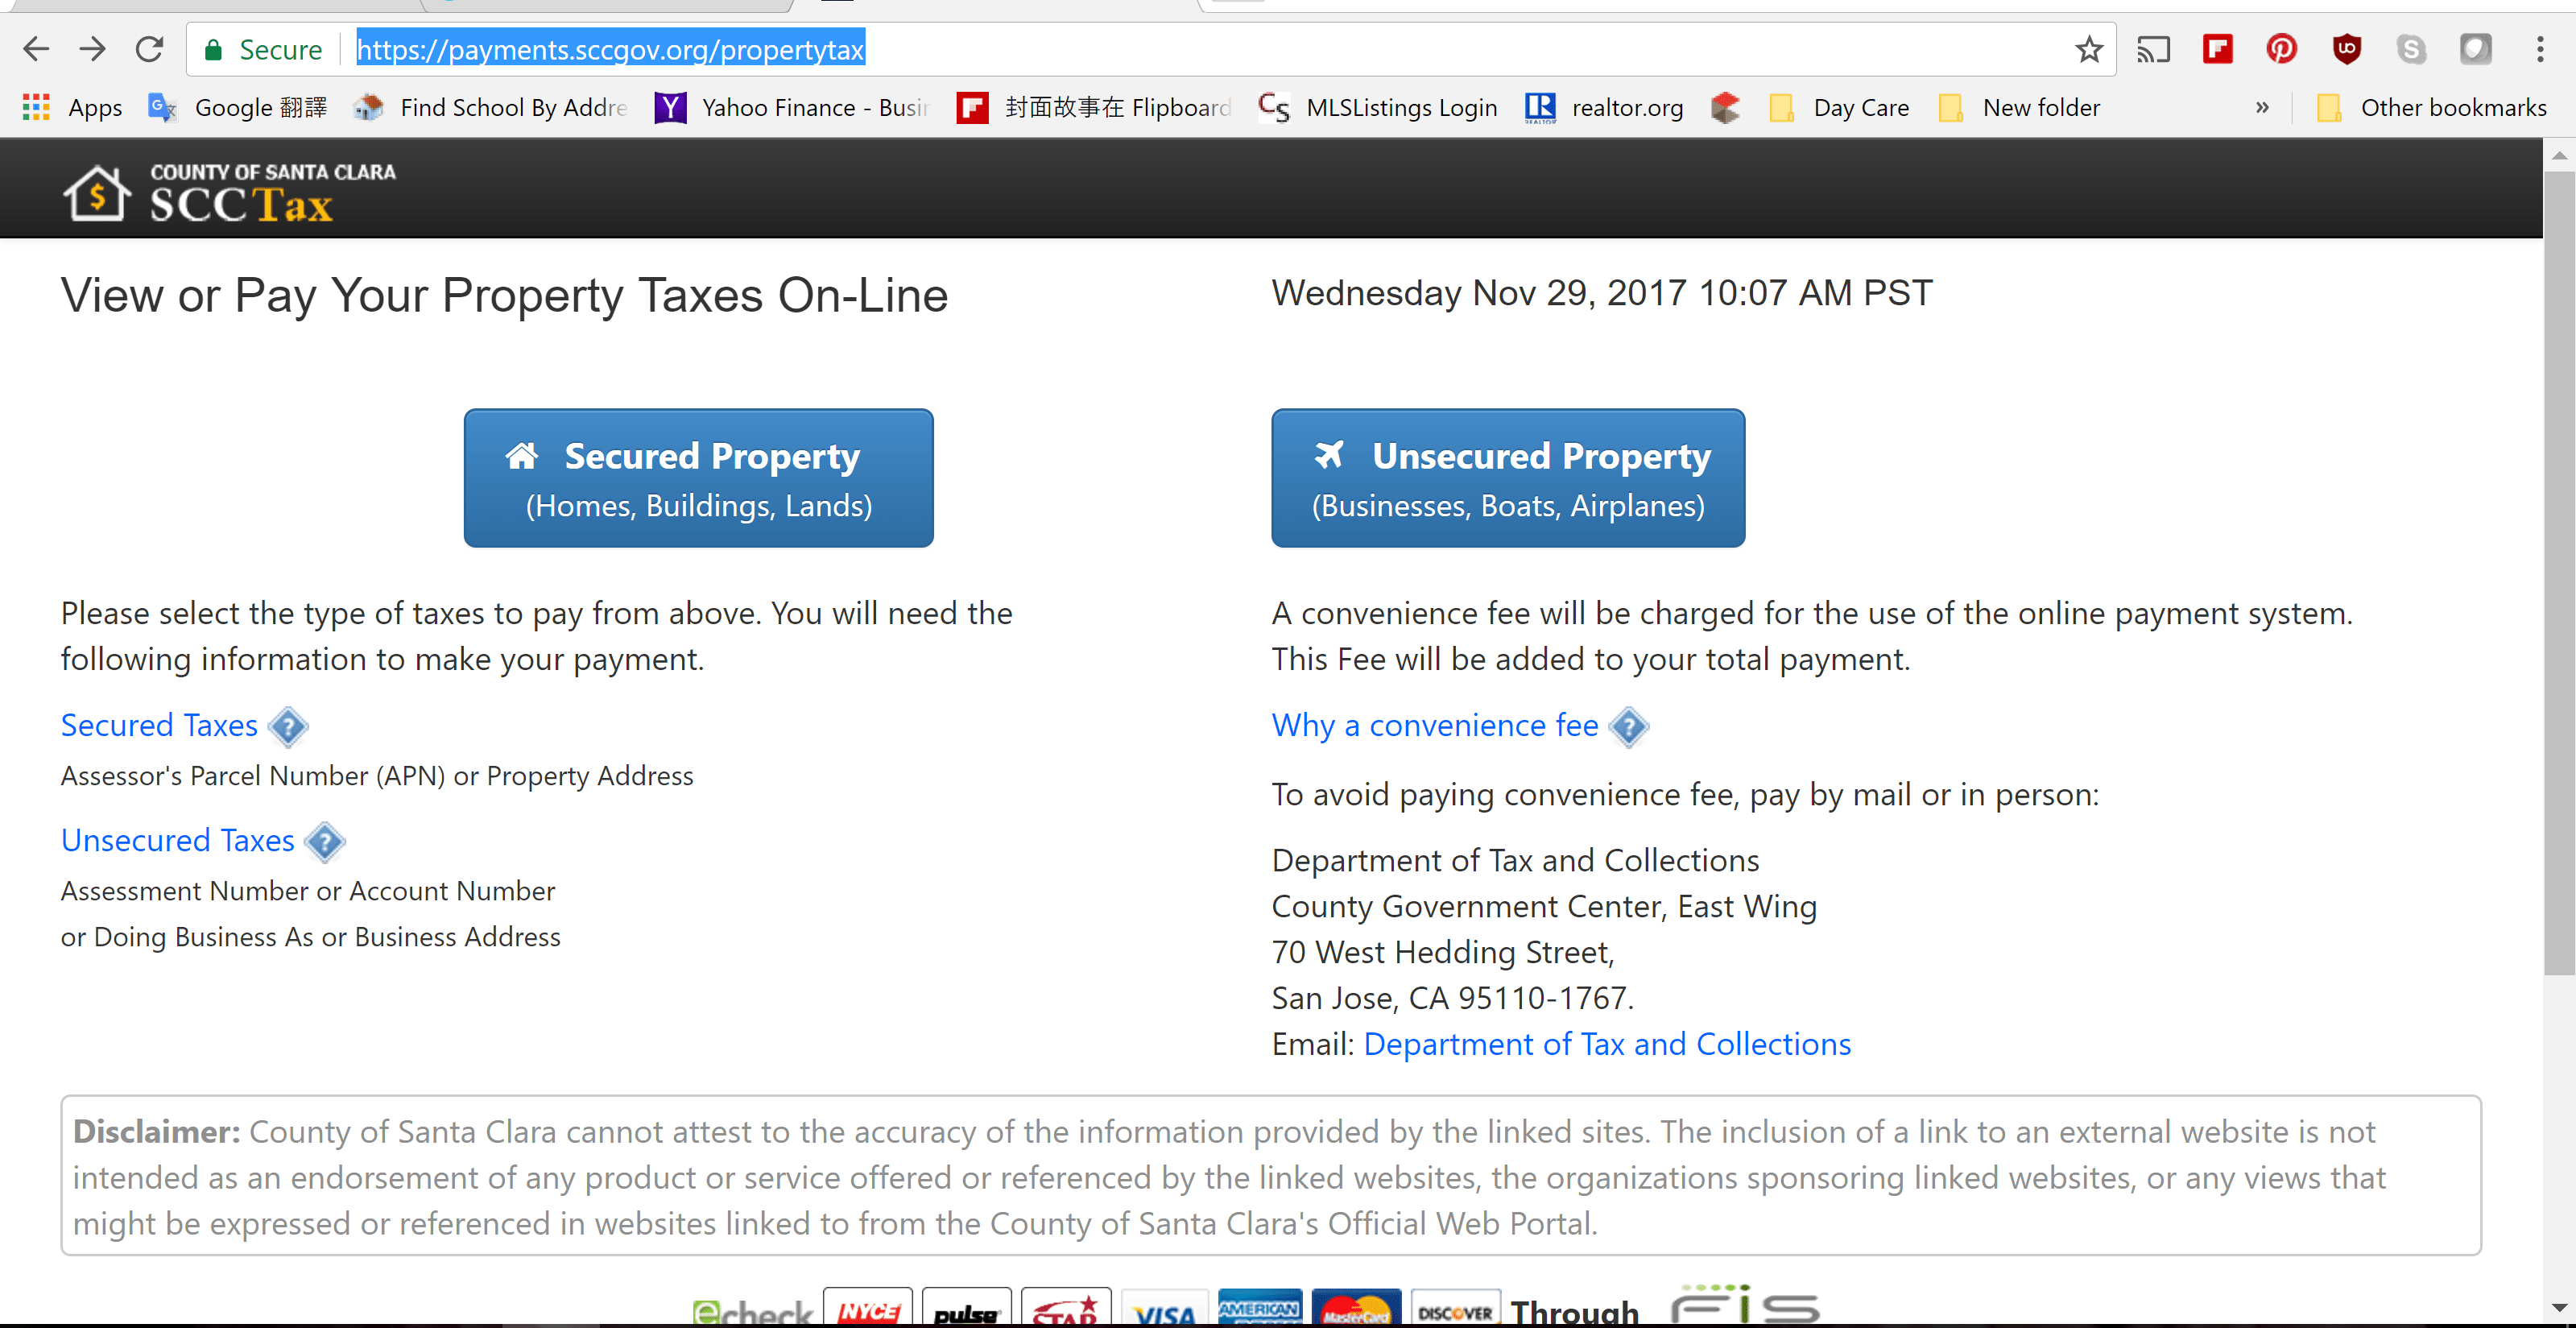 https://payments.sccgov.org/propertytax